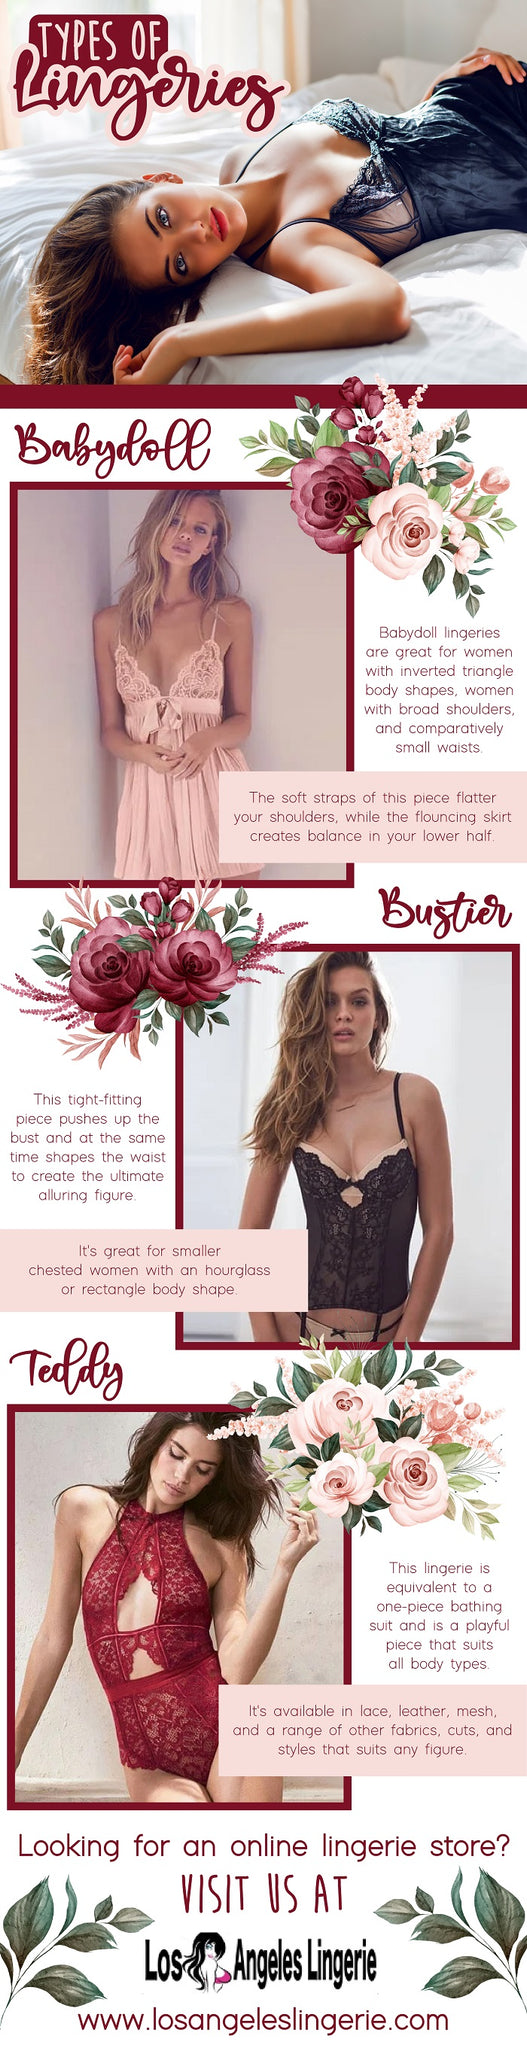 here are some type of lingeries you can buy